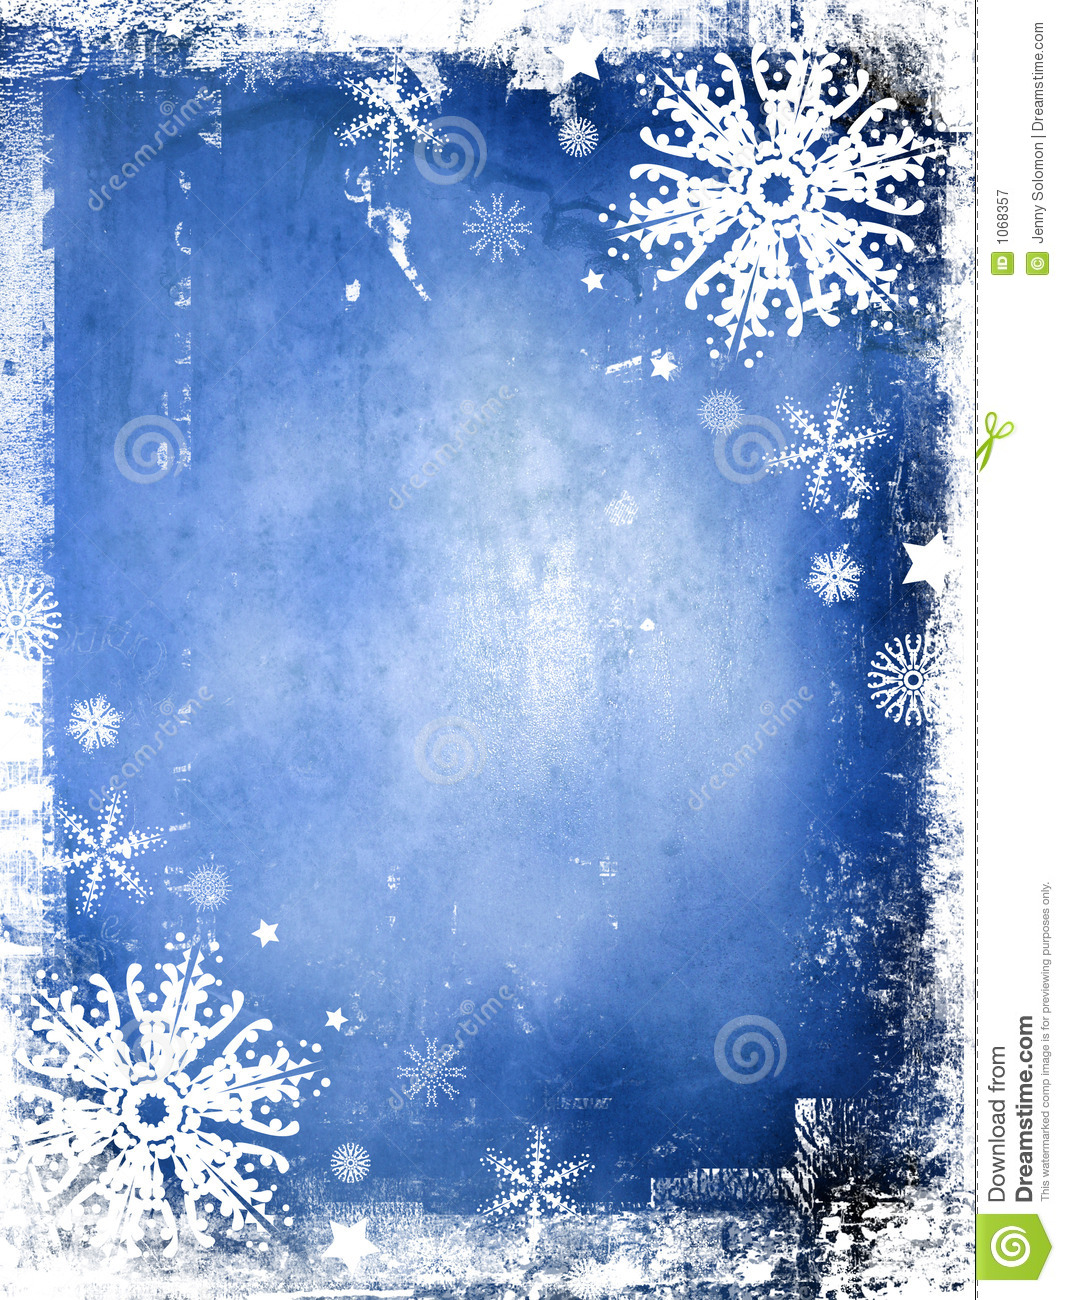 Winter Background Royalty Free Stock Photography - Image: 1068357